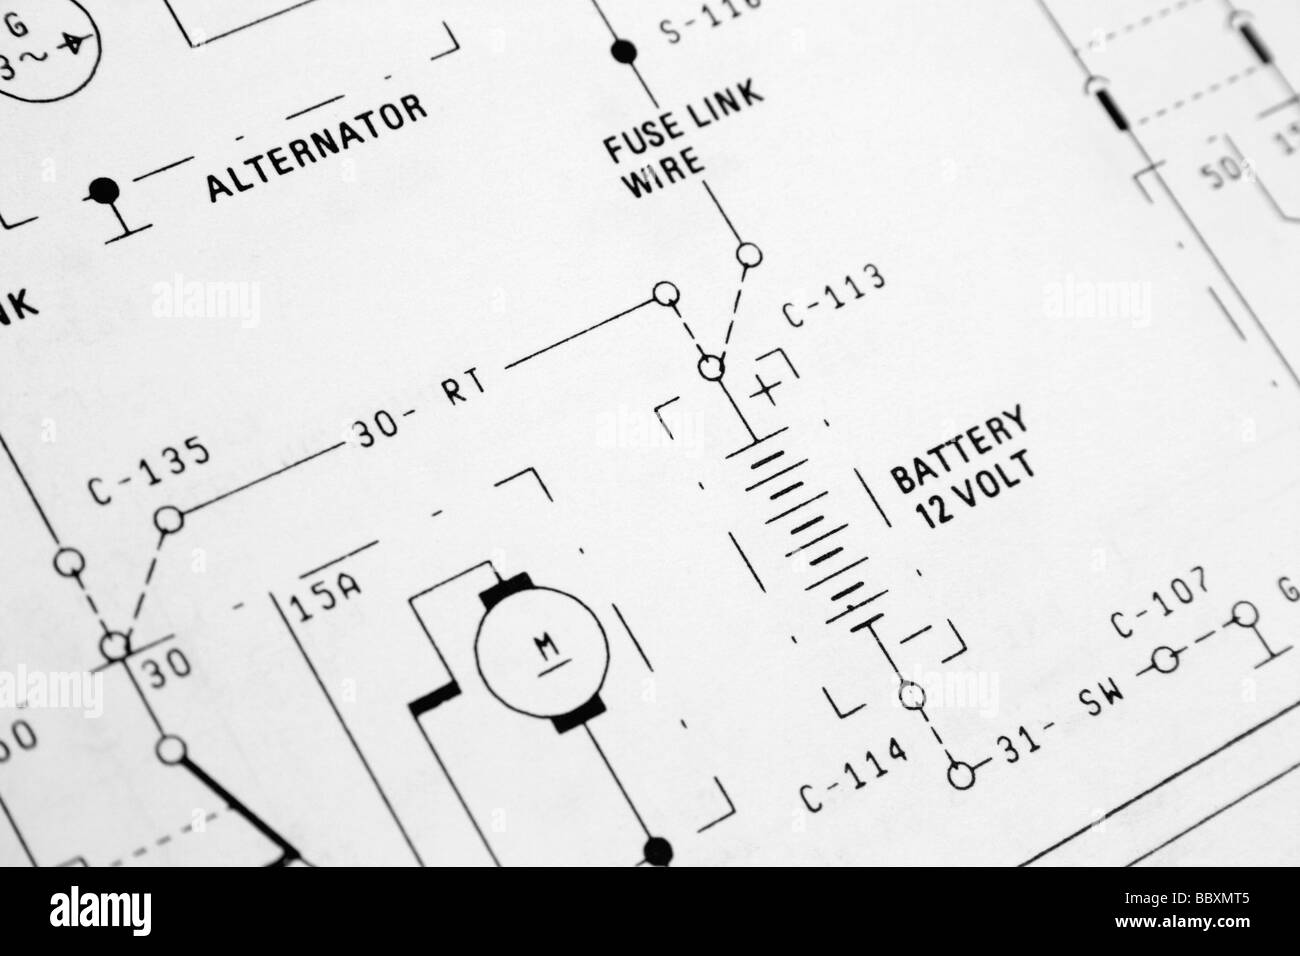 electrical wiring diagram - Stock Image